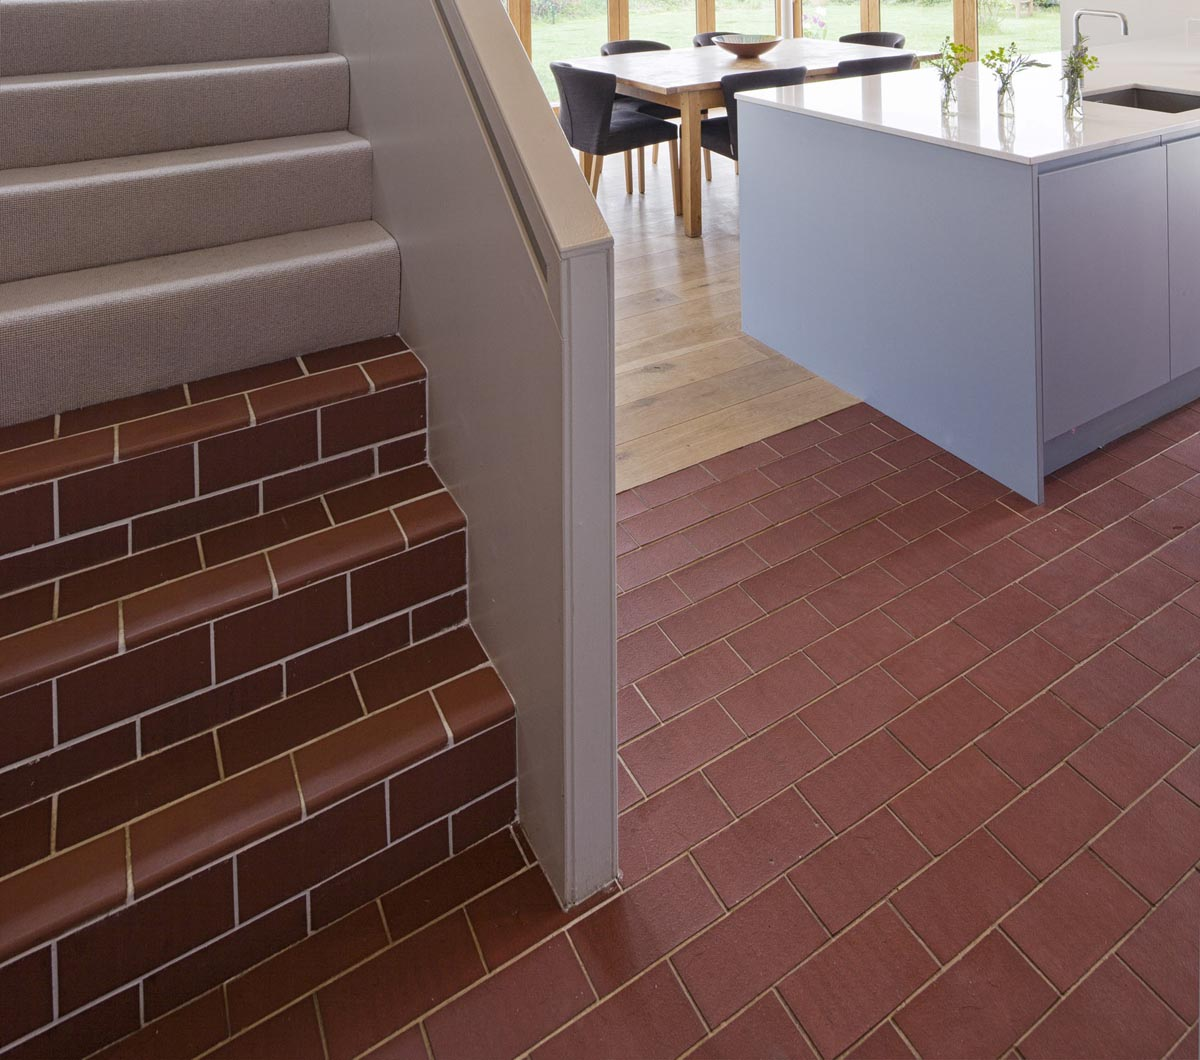 Staffs red rectangular quarry tiles laid over underfloor heating